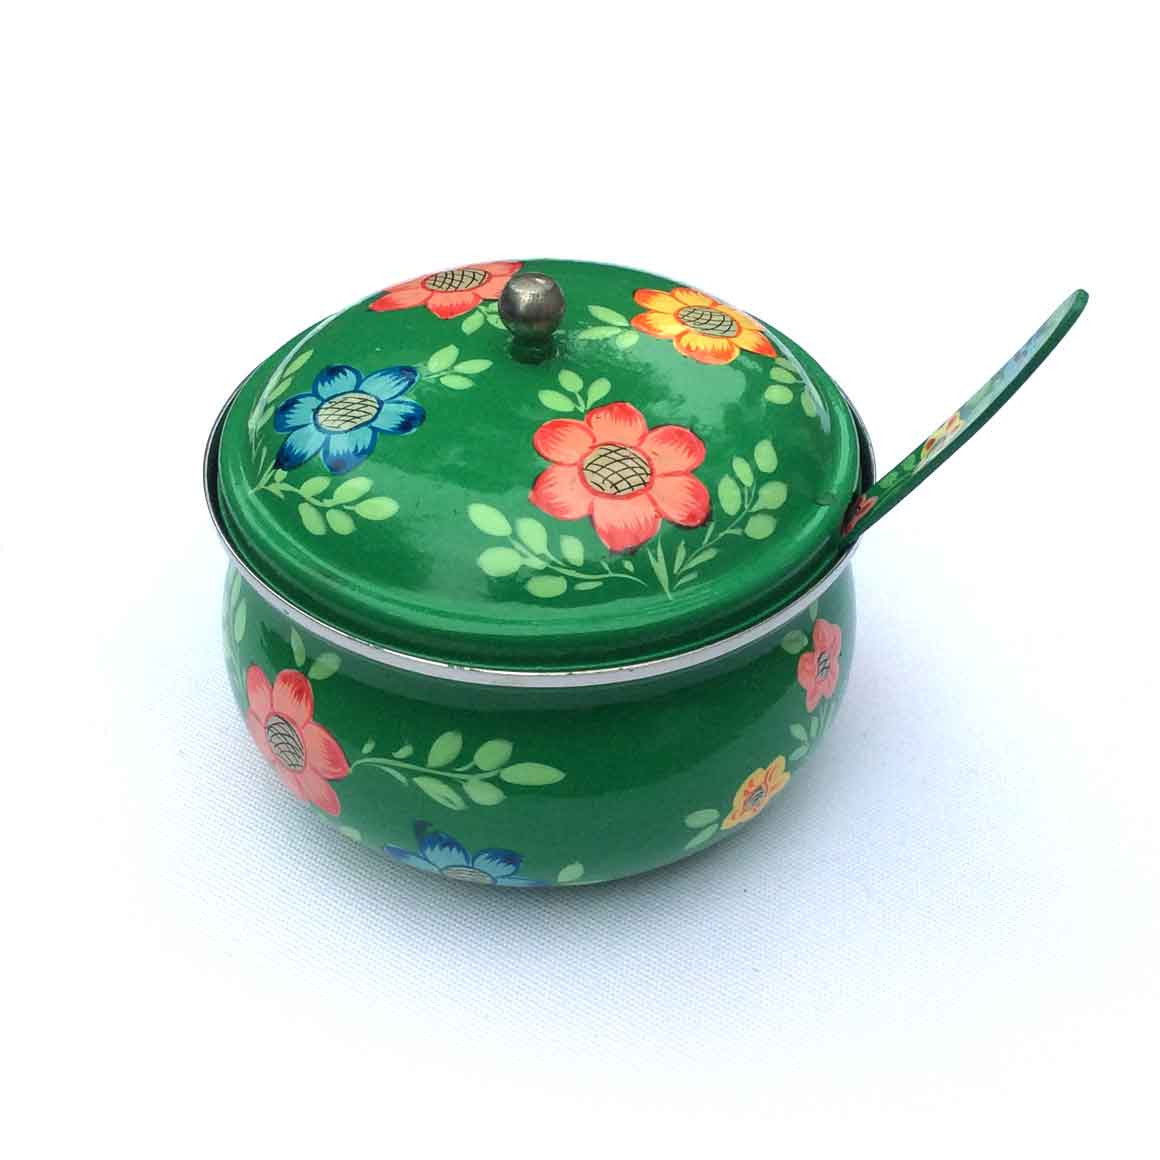 Fair Trade Ethical Homewares and Decoration Hand Painted Steel Sugar Bowl Green